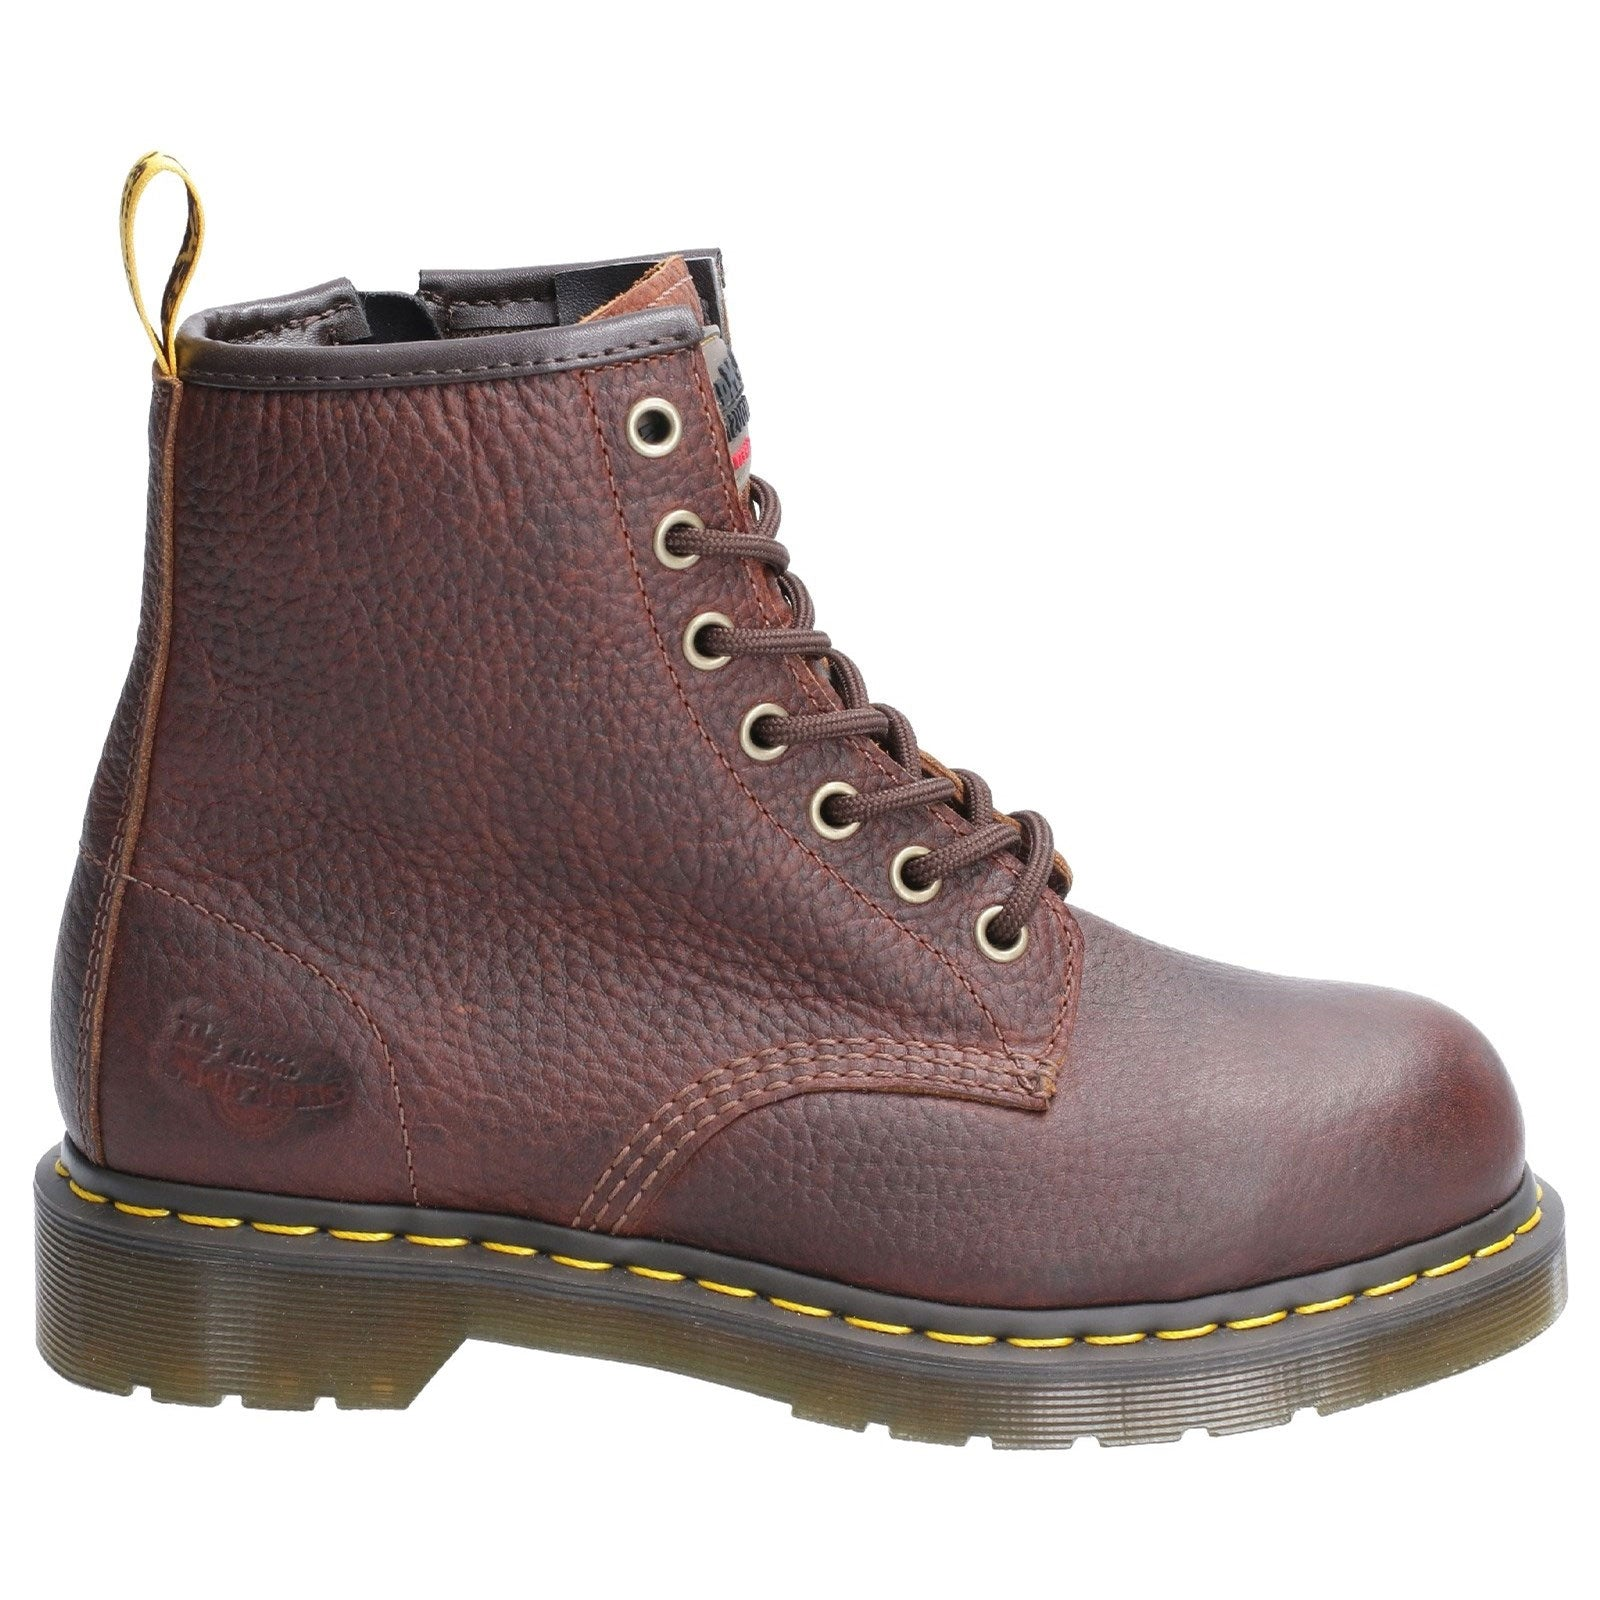 Teak industrial Bear Brown grained Leather Doc Martens Maple Zip Steel Toe Ladies Work Boot